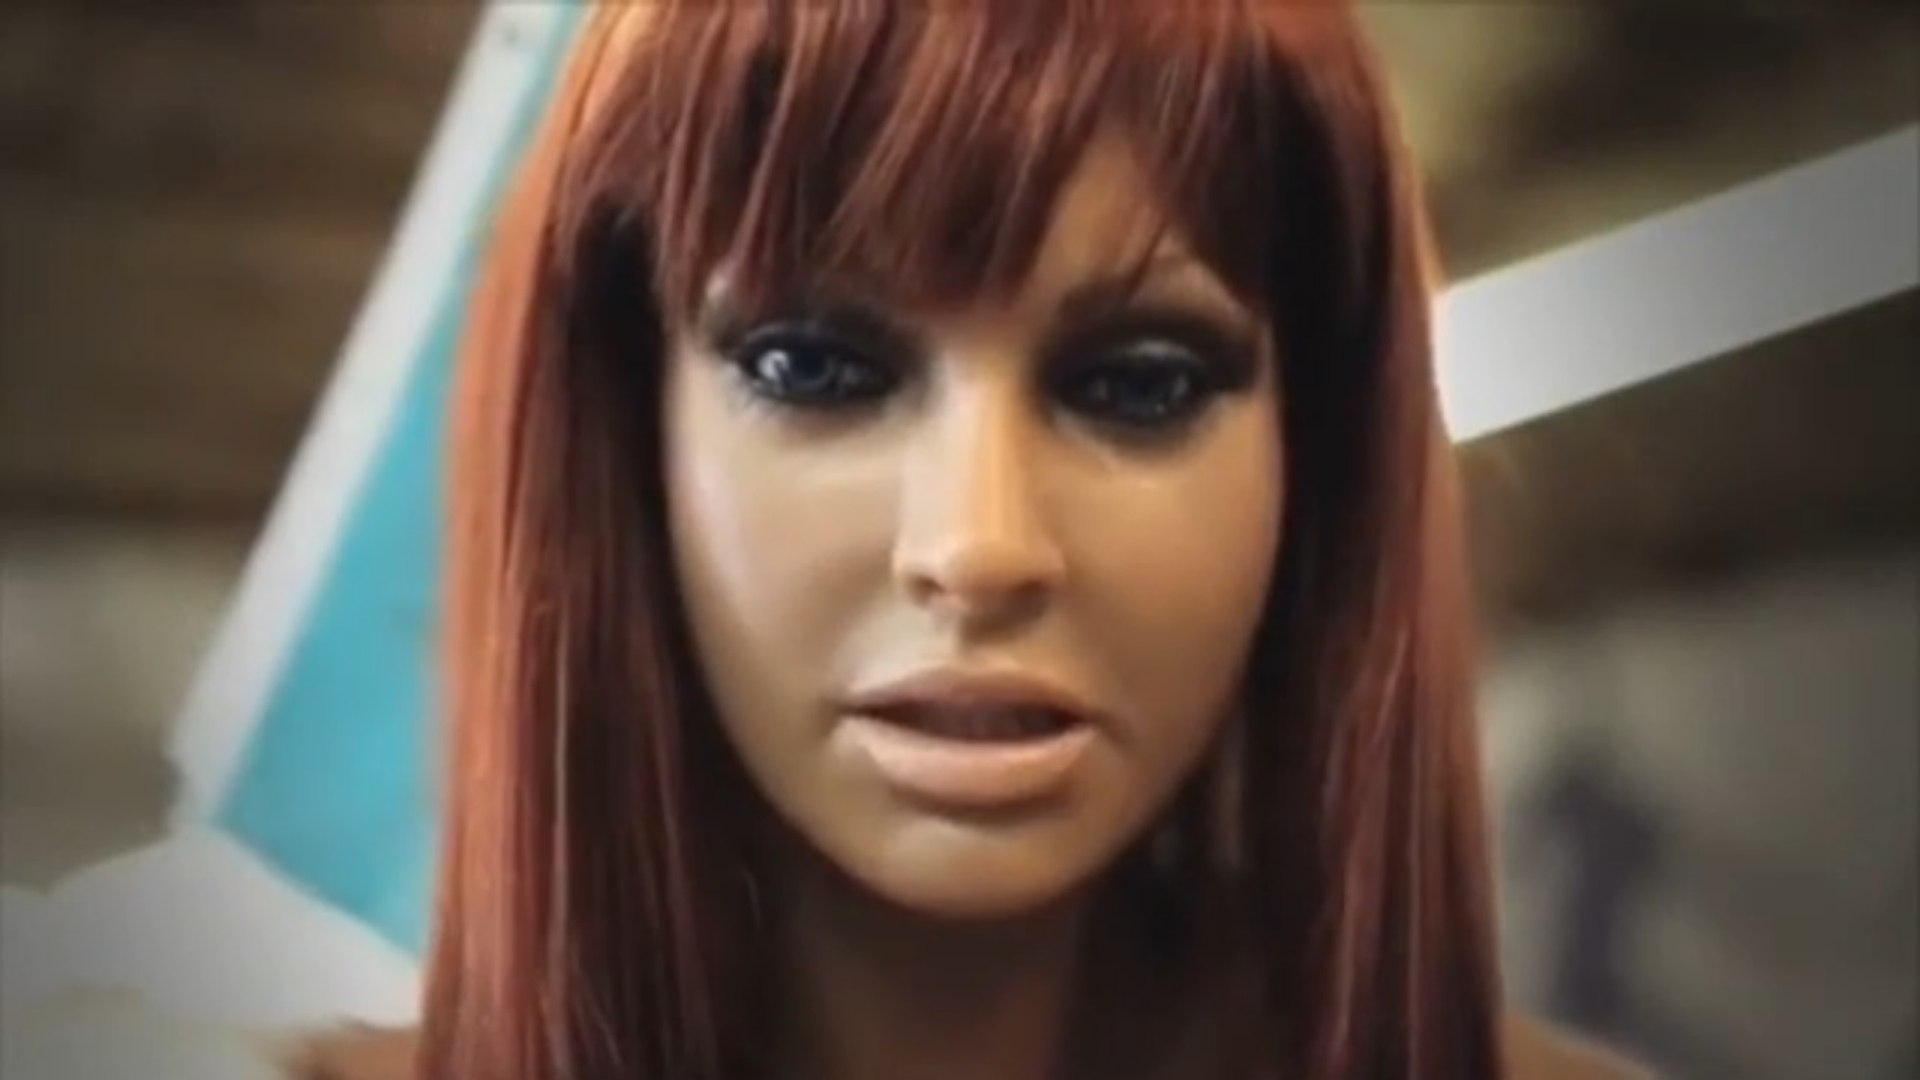 $10,000 Ultimate Sex Machine? WARNING: ADULT GRAPHIC SCENES 18+ | Sex Doll / Sex Robot